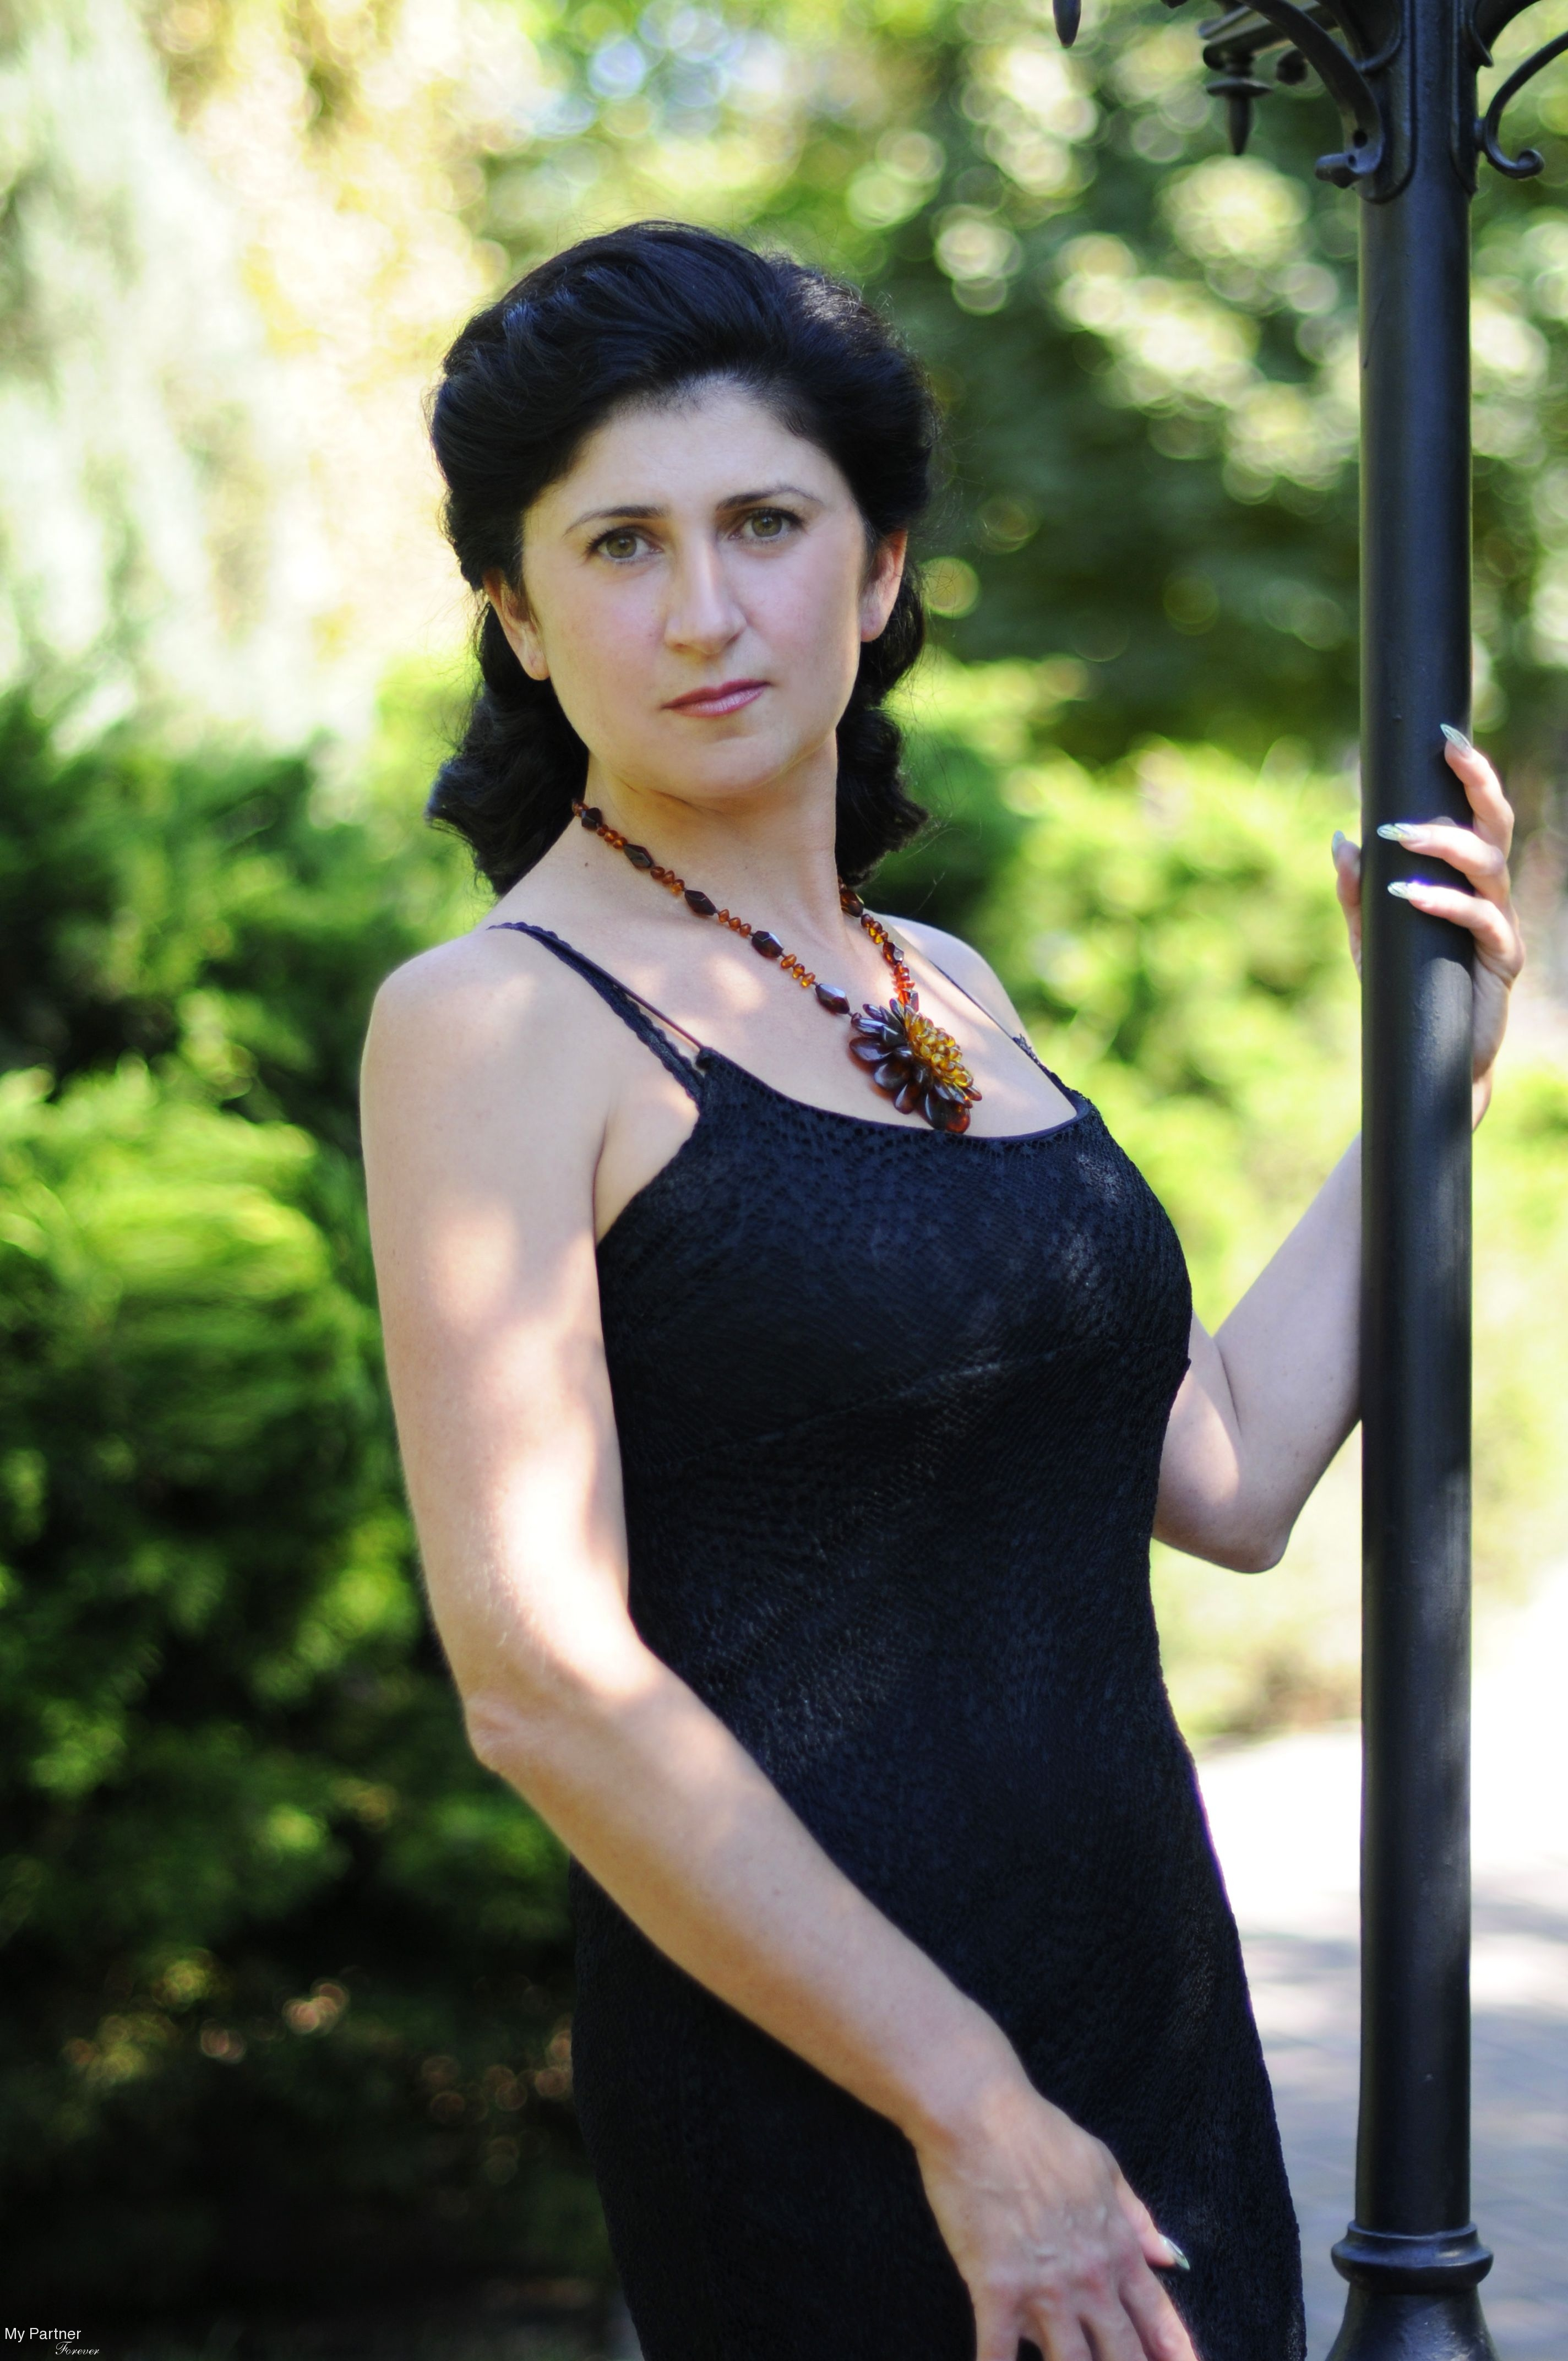 Oriented Russian Bride Then 60